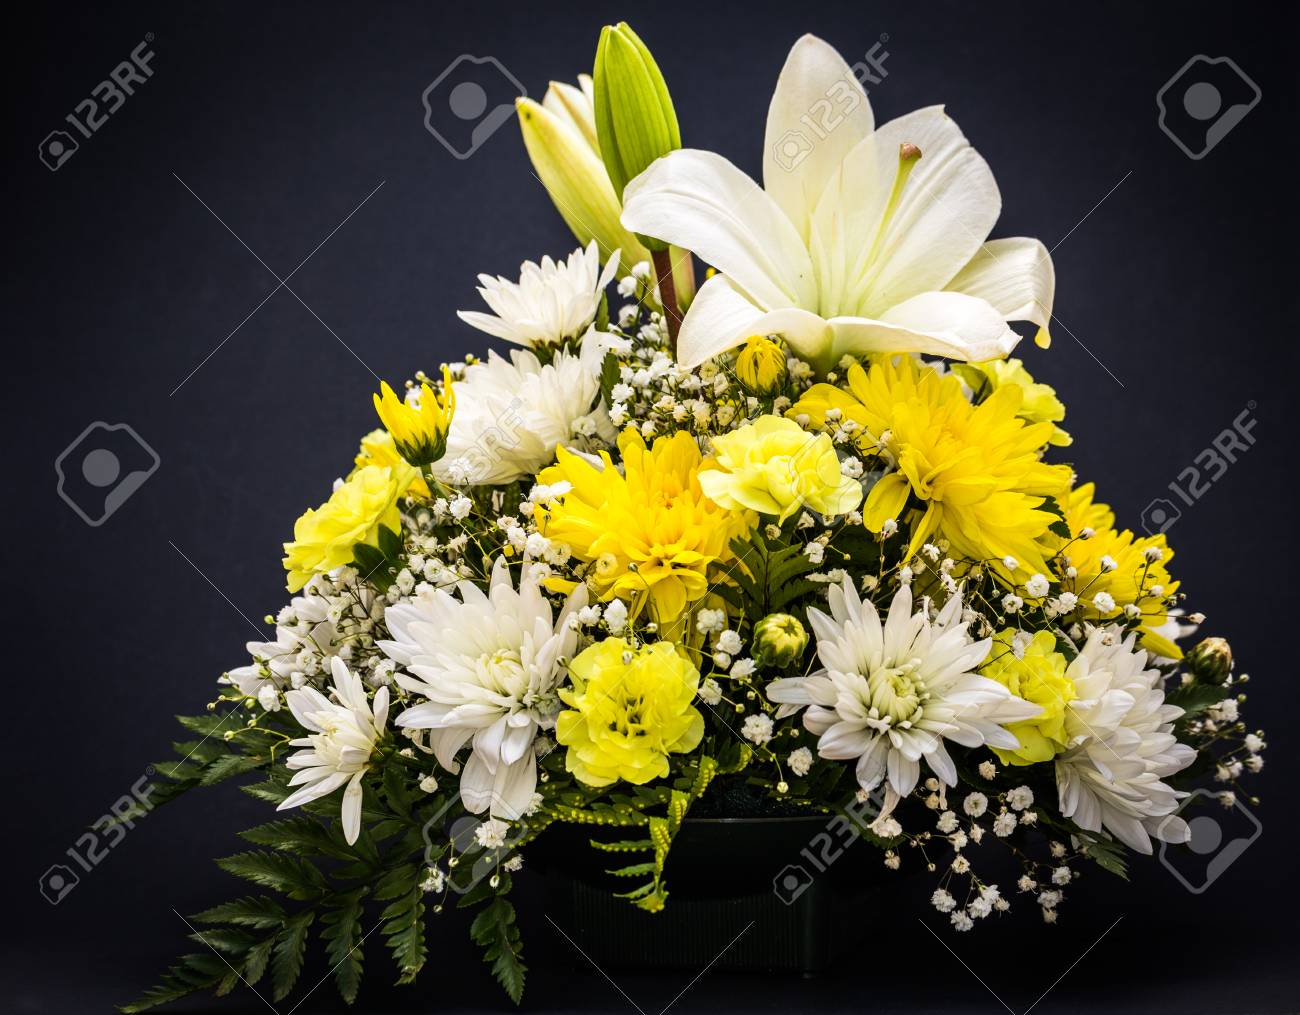 A Bouquet Of Yellow And White Flowers Set On A Black Background